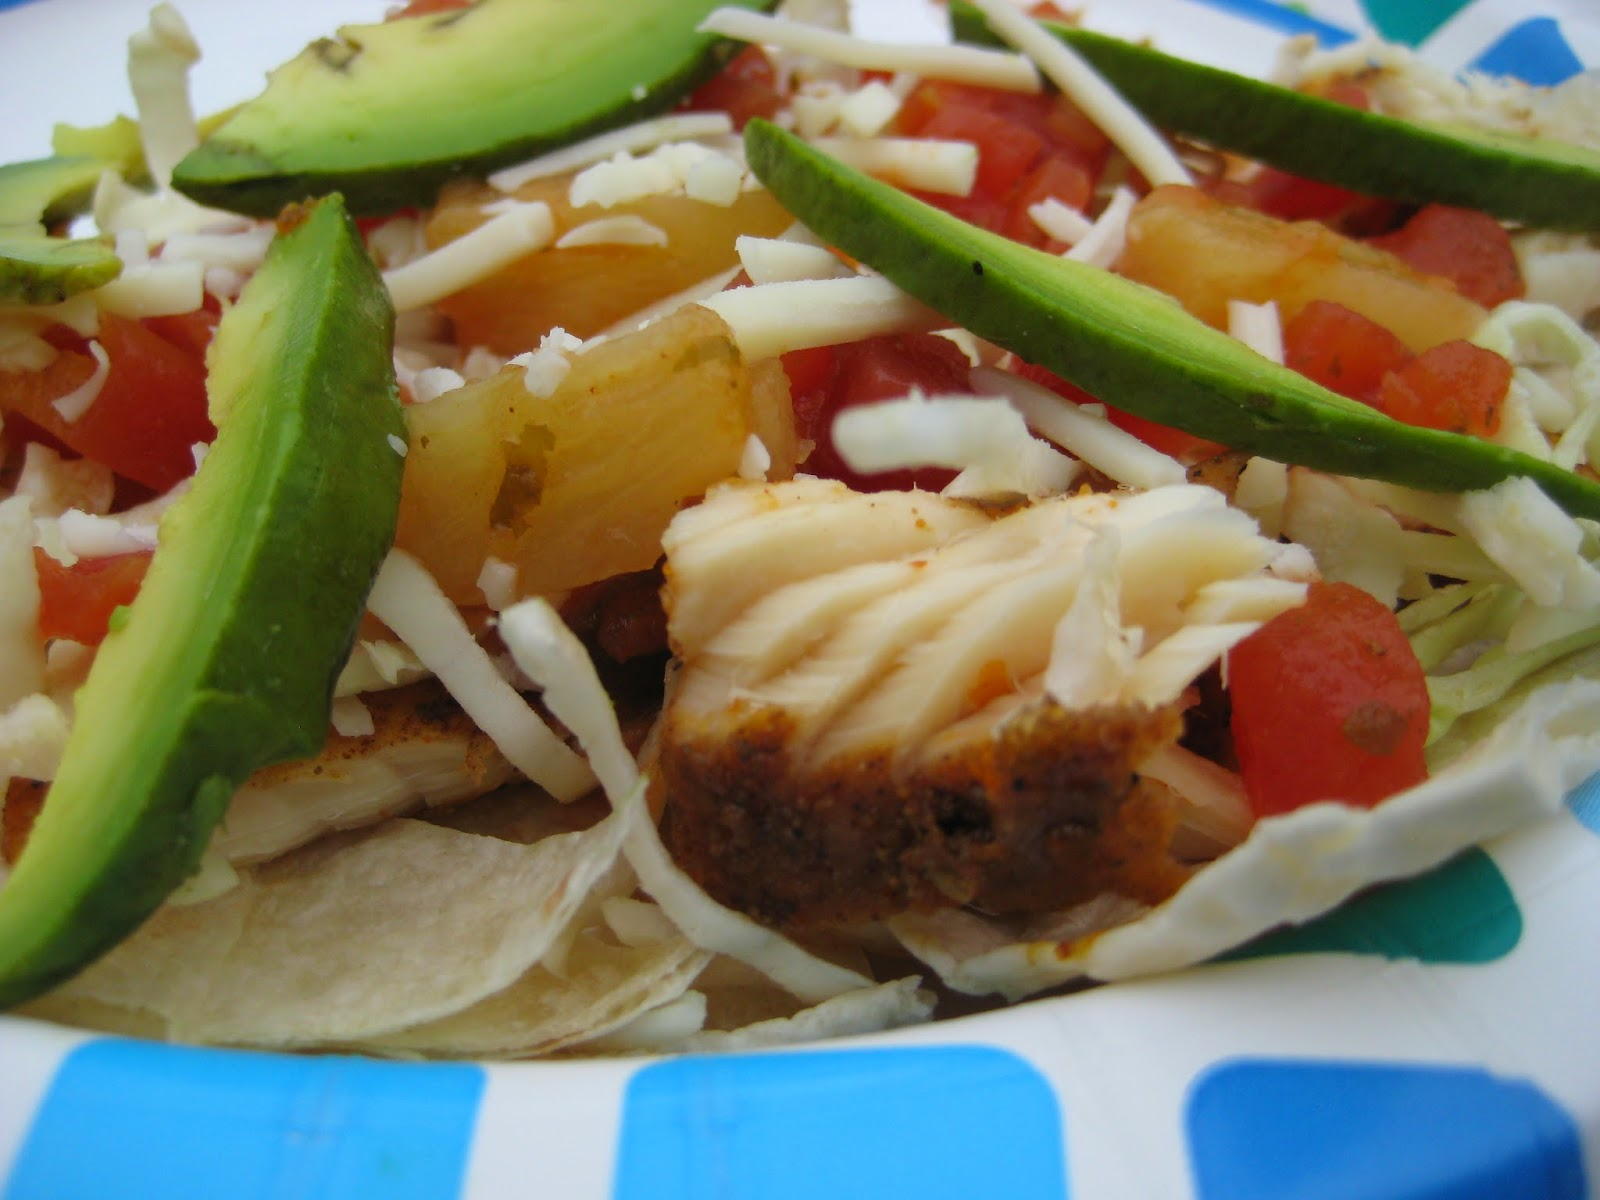 OMG, Have You Tasted This?: What's Football Without Nachos?